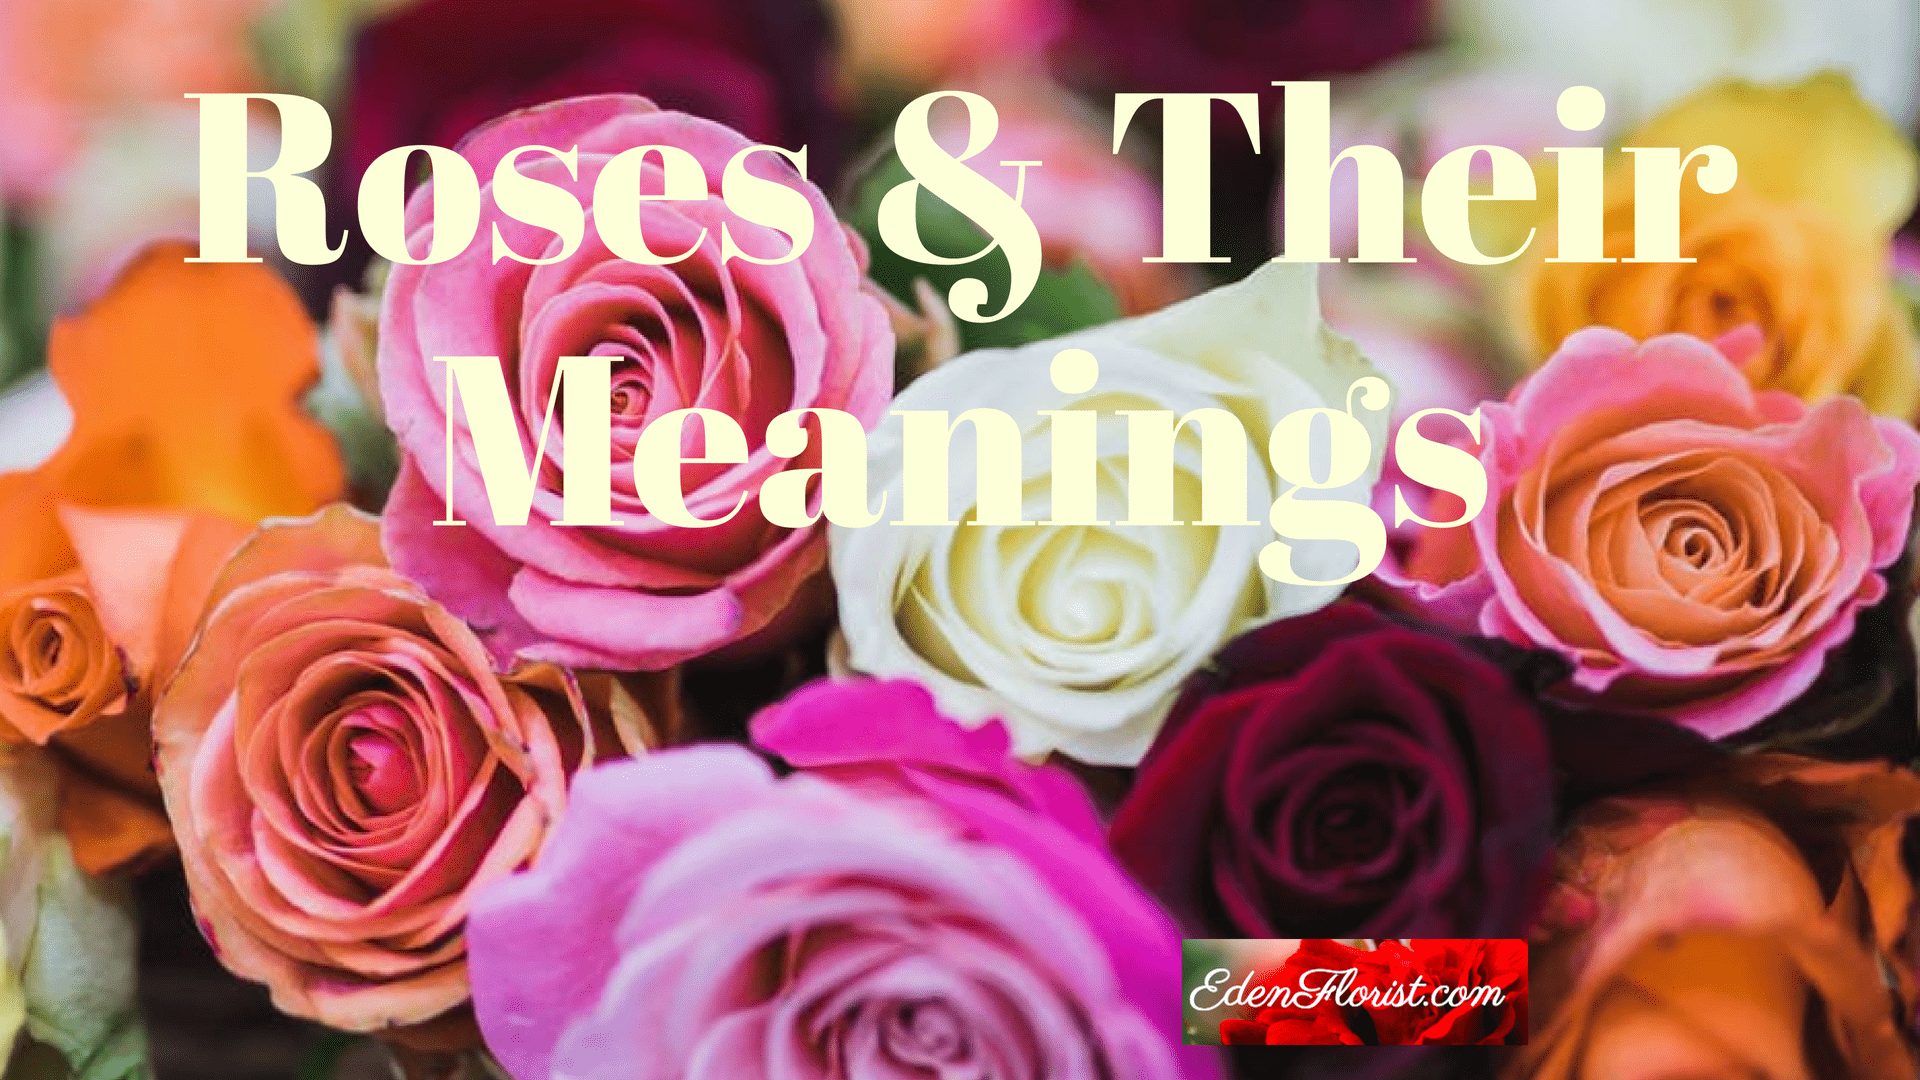 Roses and Their Meanings